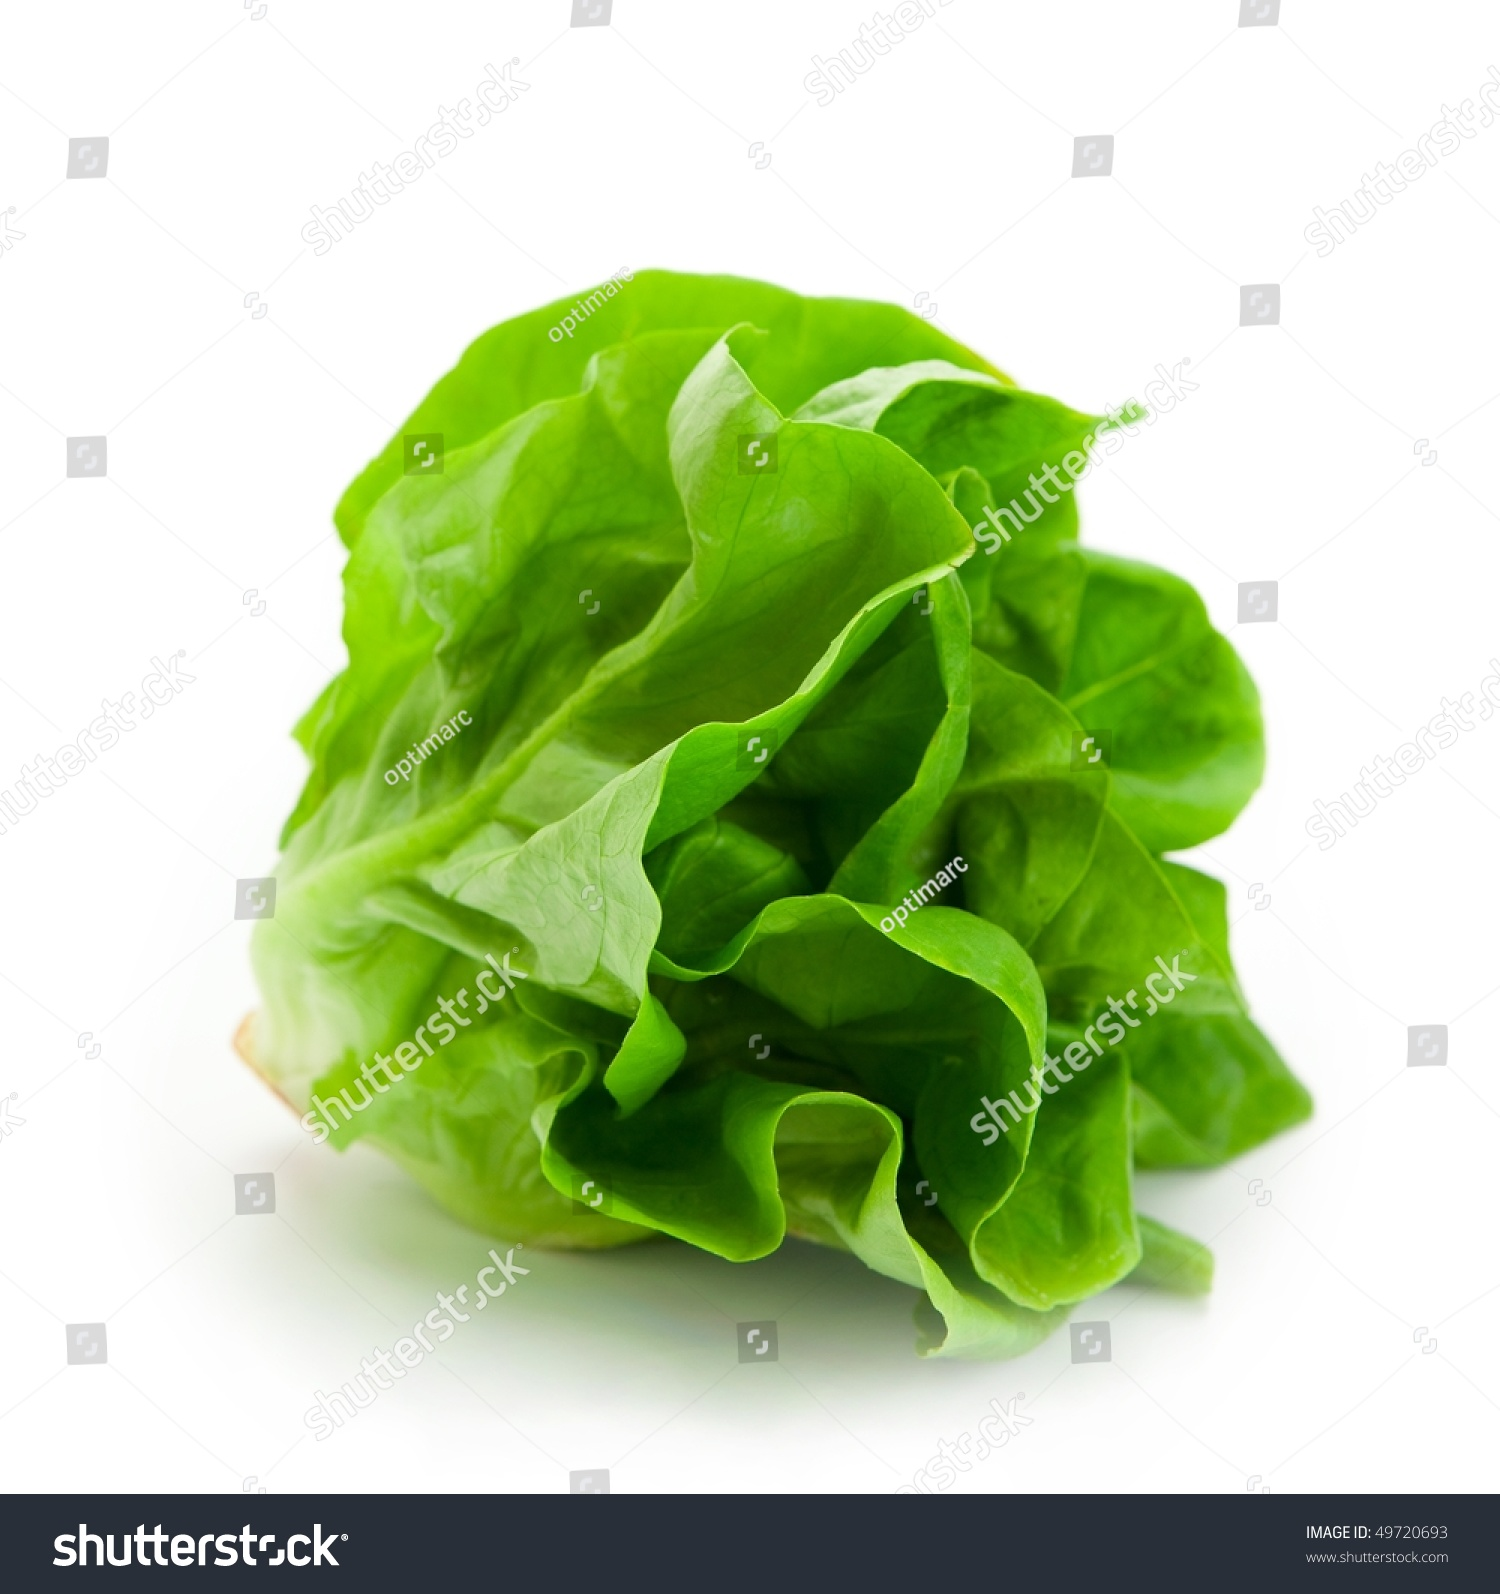 Fresh Butterhead Salad Lettuce (Also Known As Boston, Bibb, Buttercrunch, And Tom Thumb, Arctic King) Isolated On White Stock Photo 49720693 ...